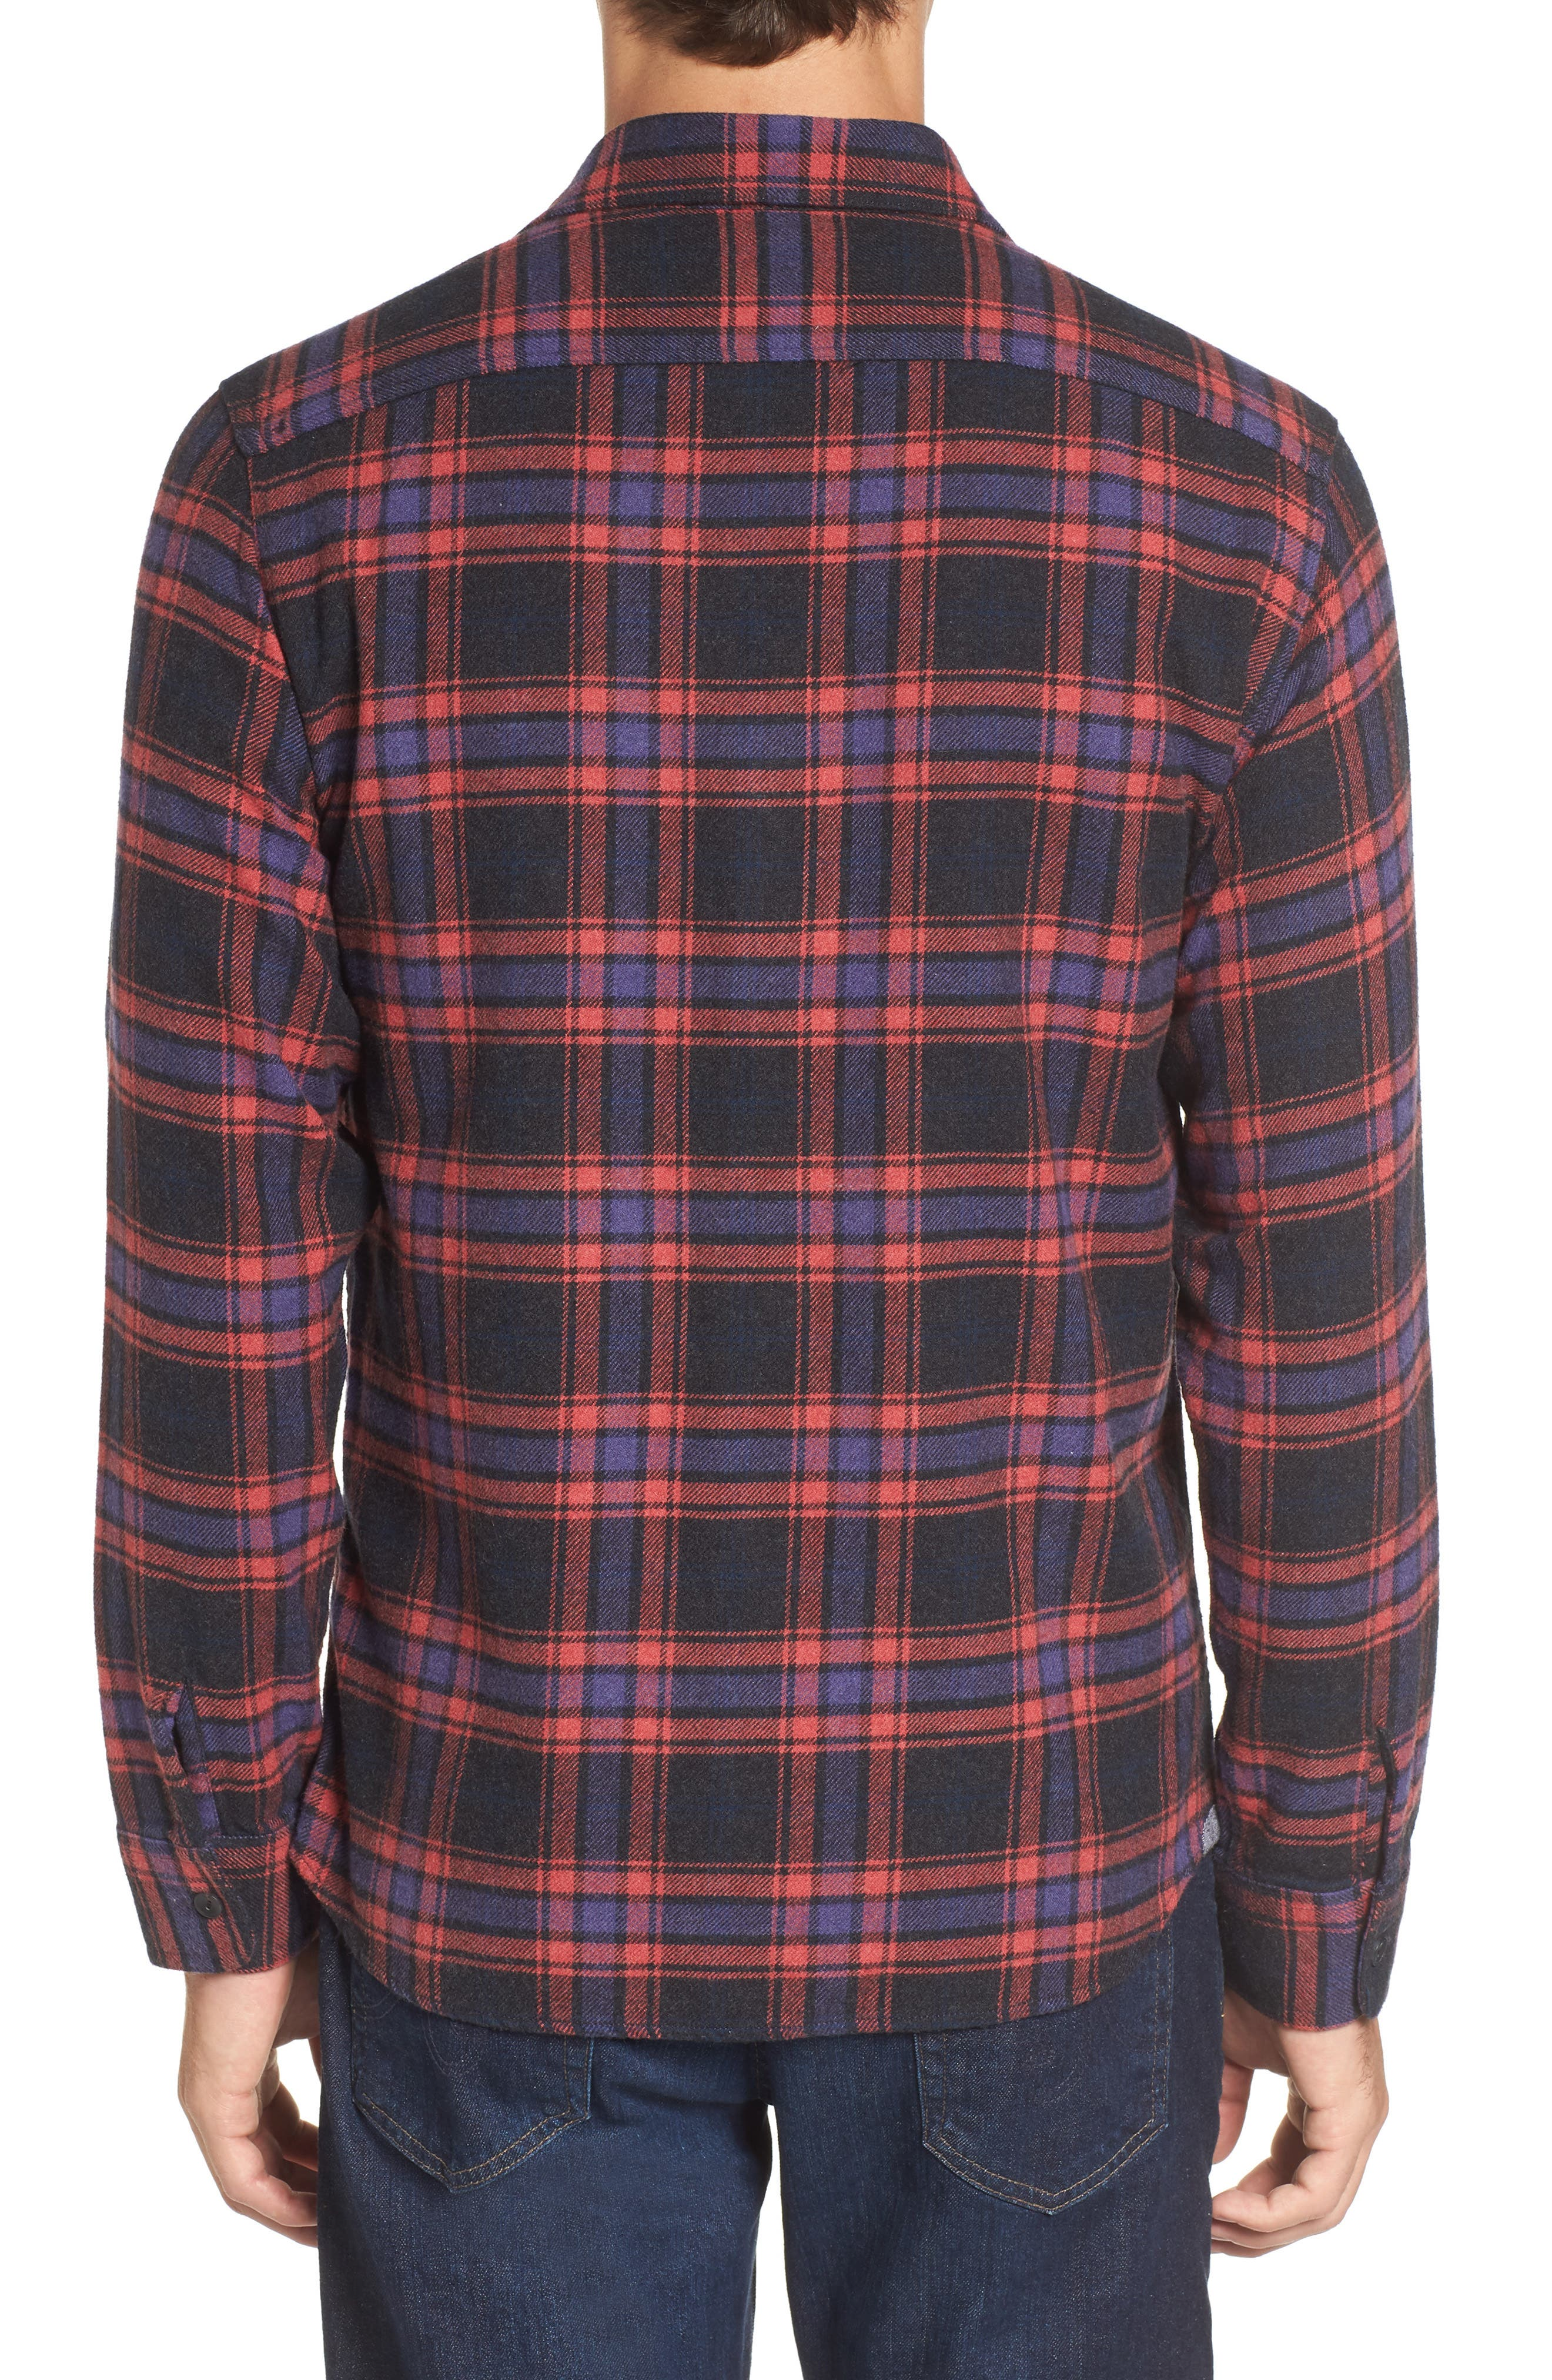 Chaucer Heritage Flannel Shirt,                             Alternate thumbnail 2, color,                             Charcoal Red